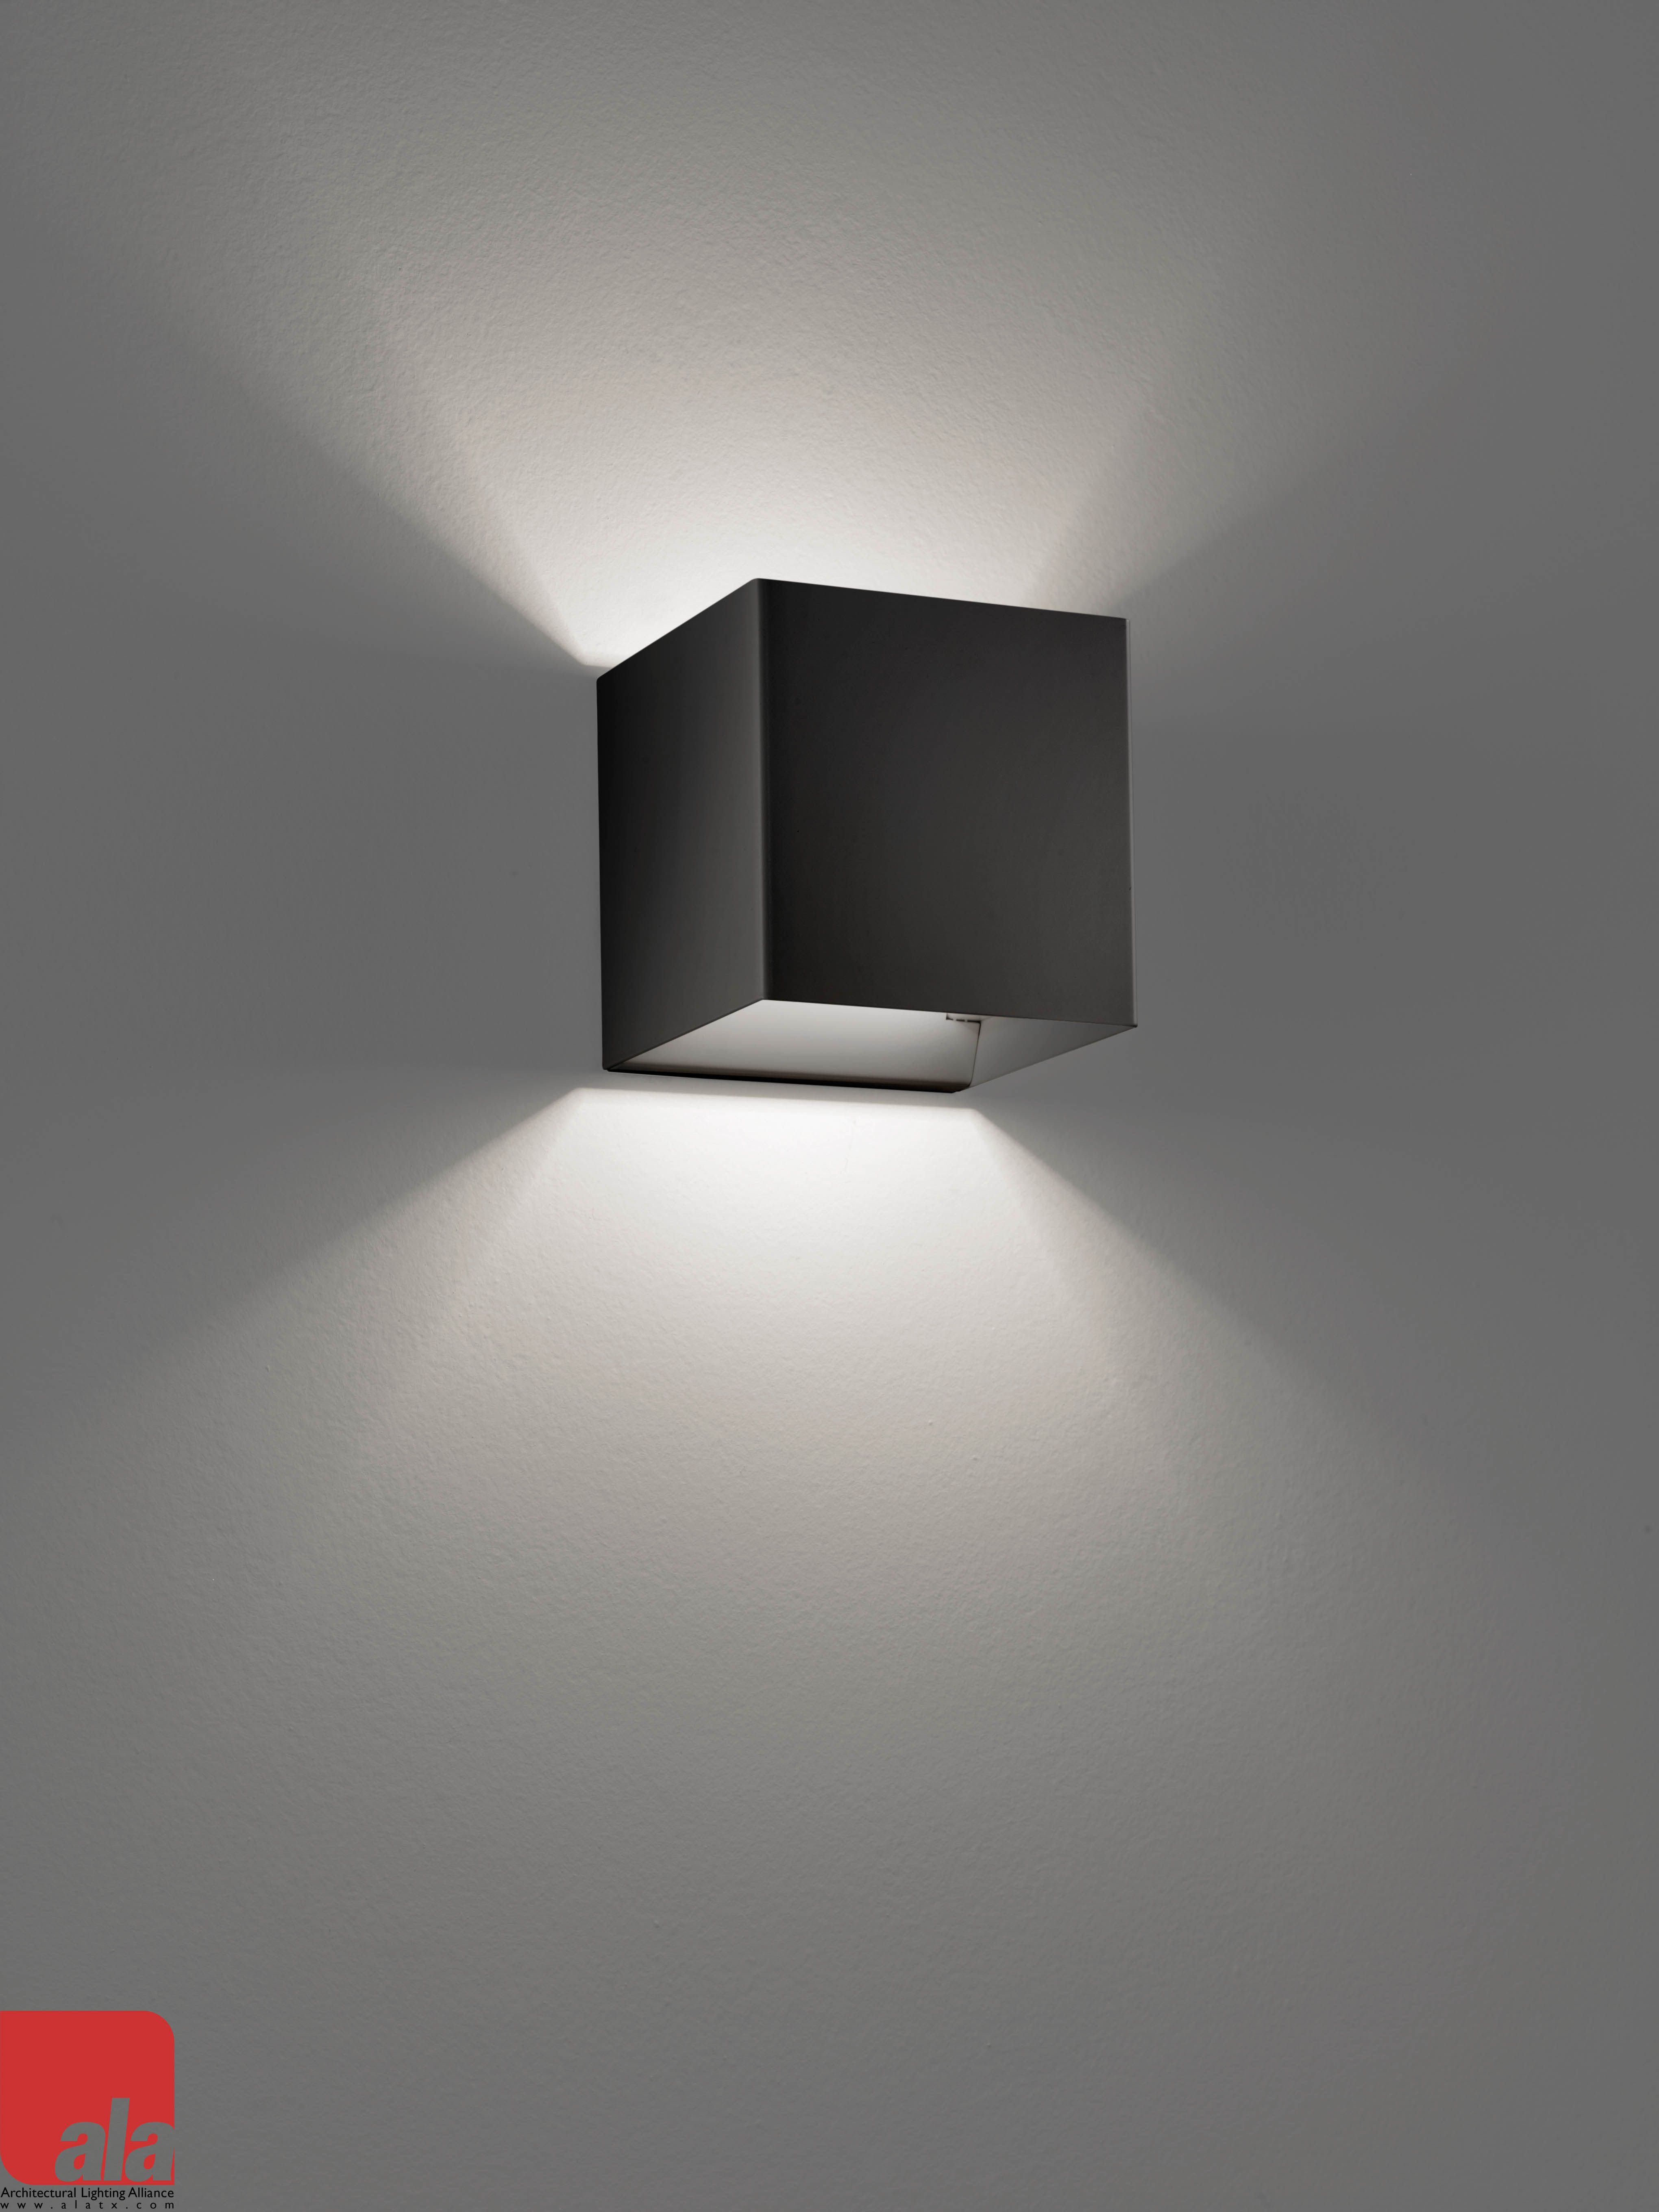 Laser Cube 05 168 In 2020 Wall Lamp Black Wall Lights